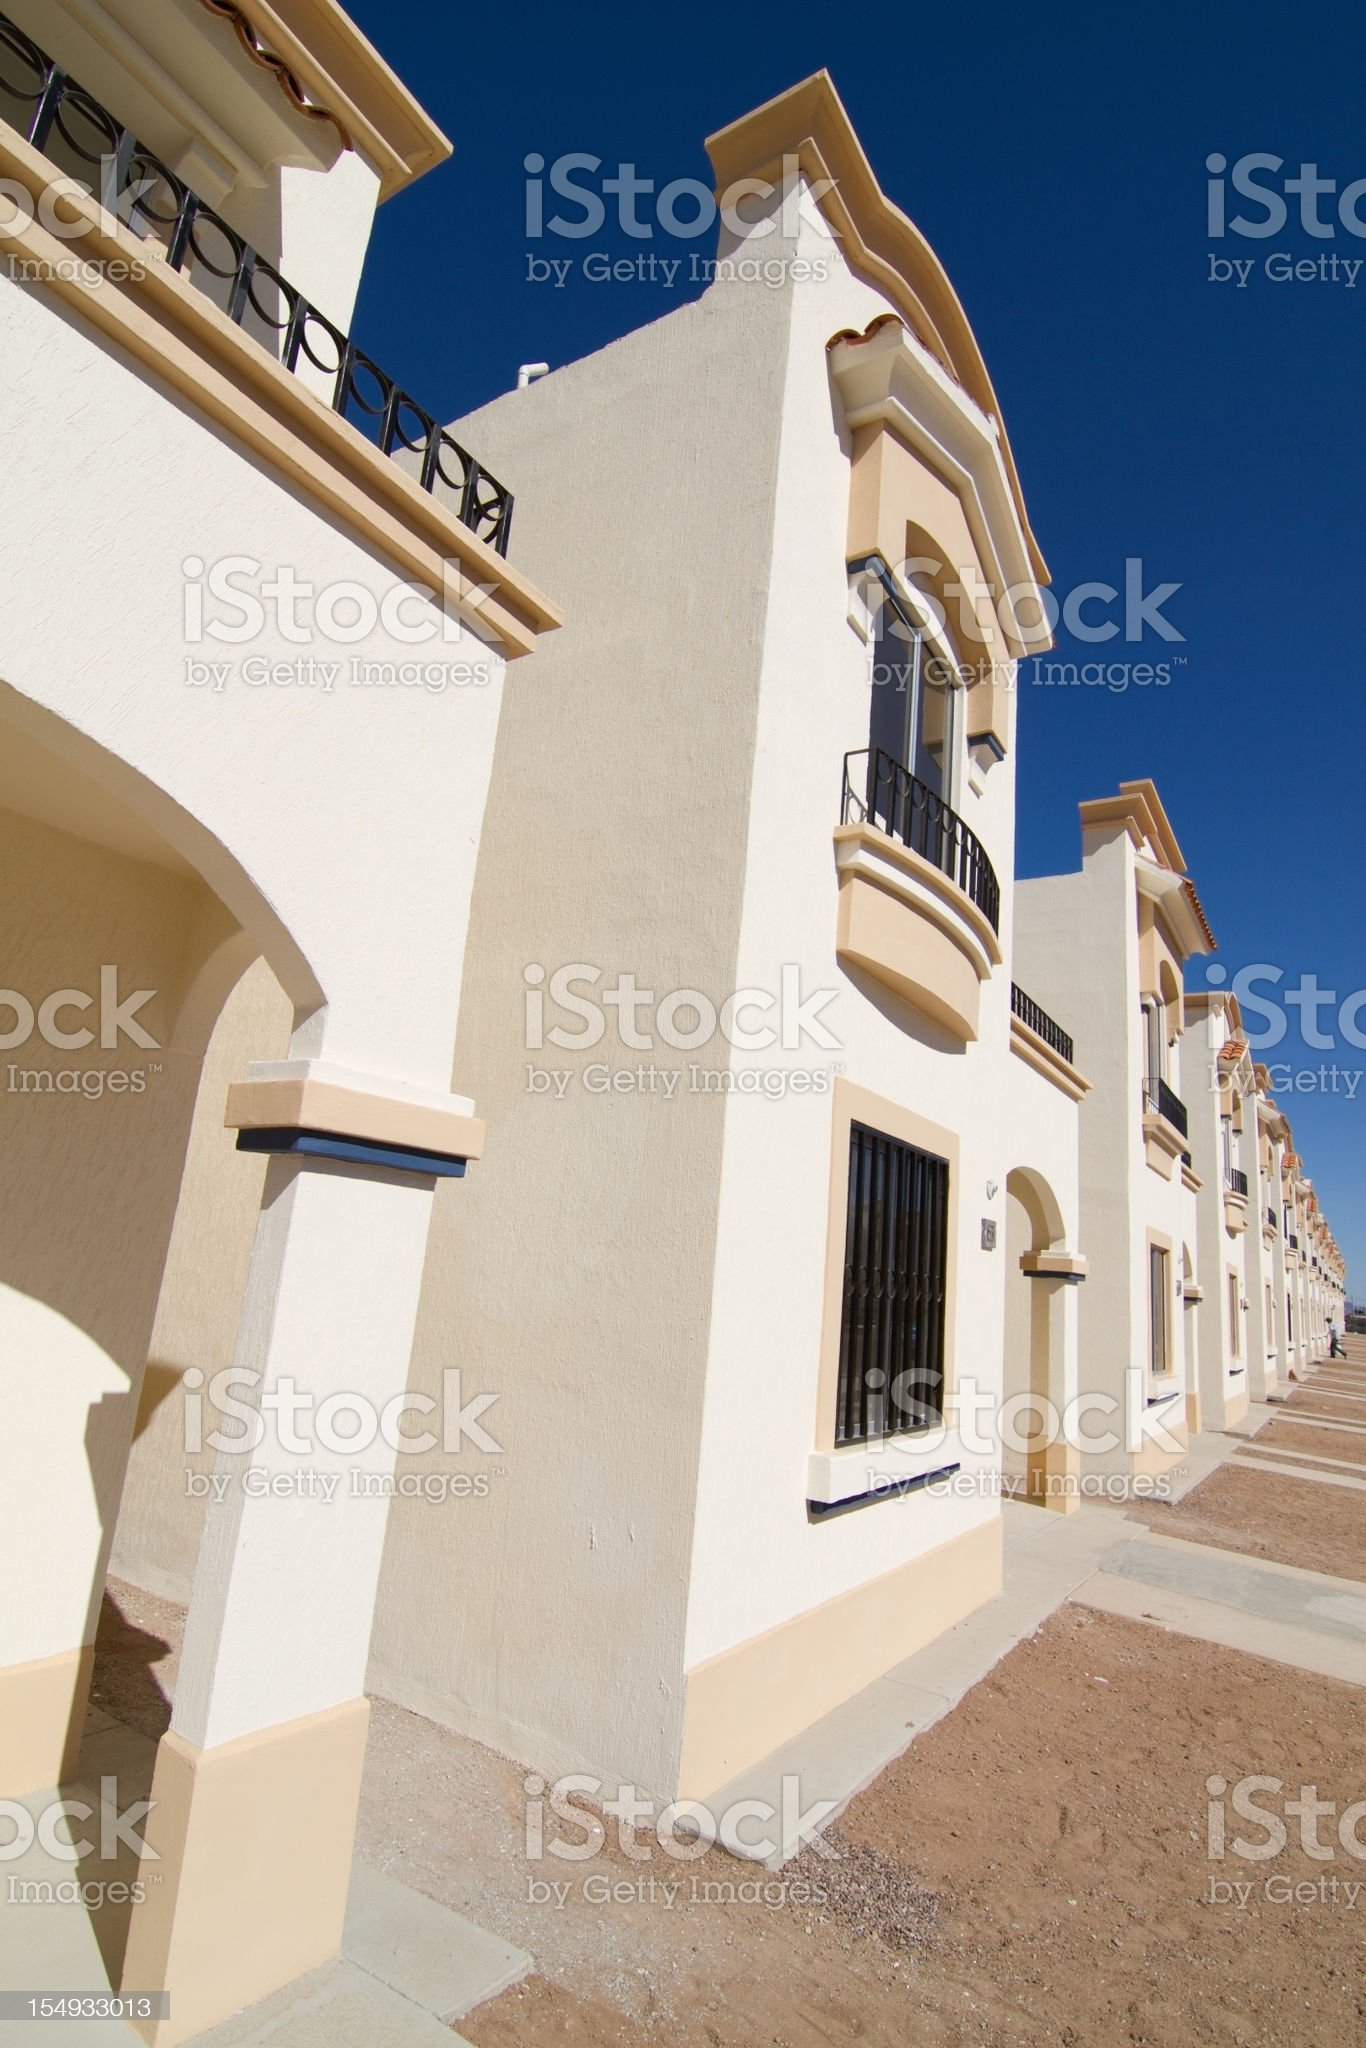 Mexican Villas royalty-free stock photo